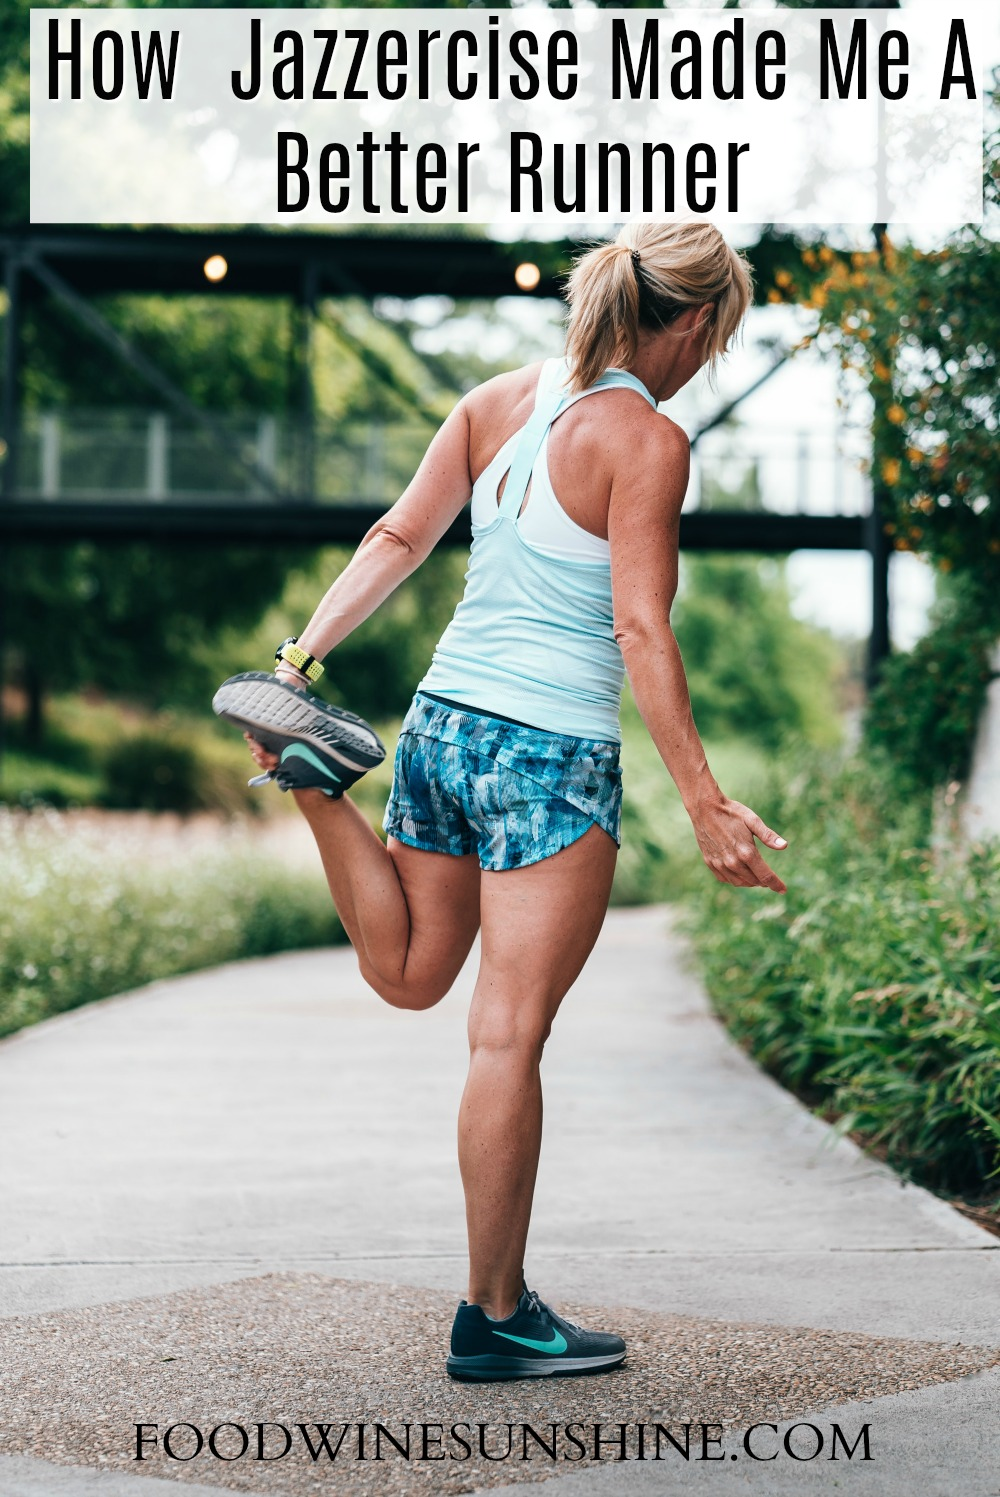 How Jazzercise made me a better runner